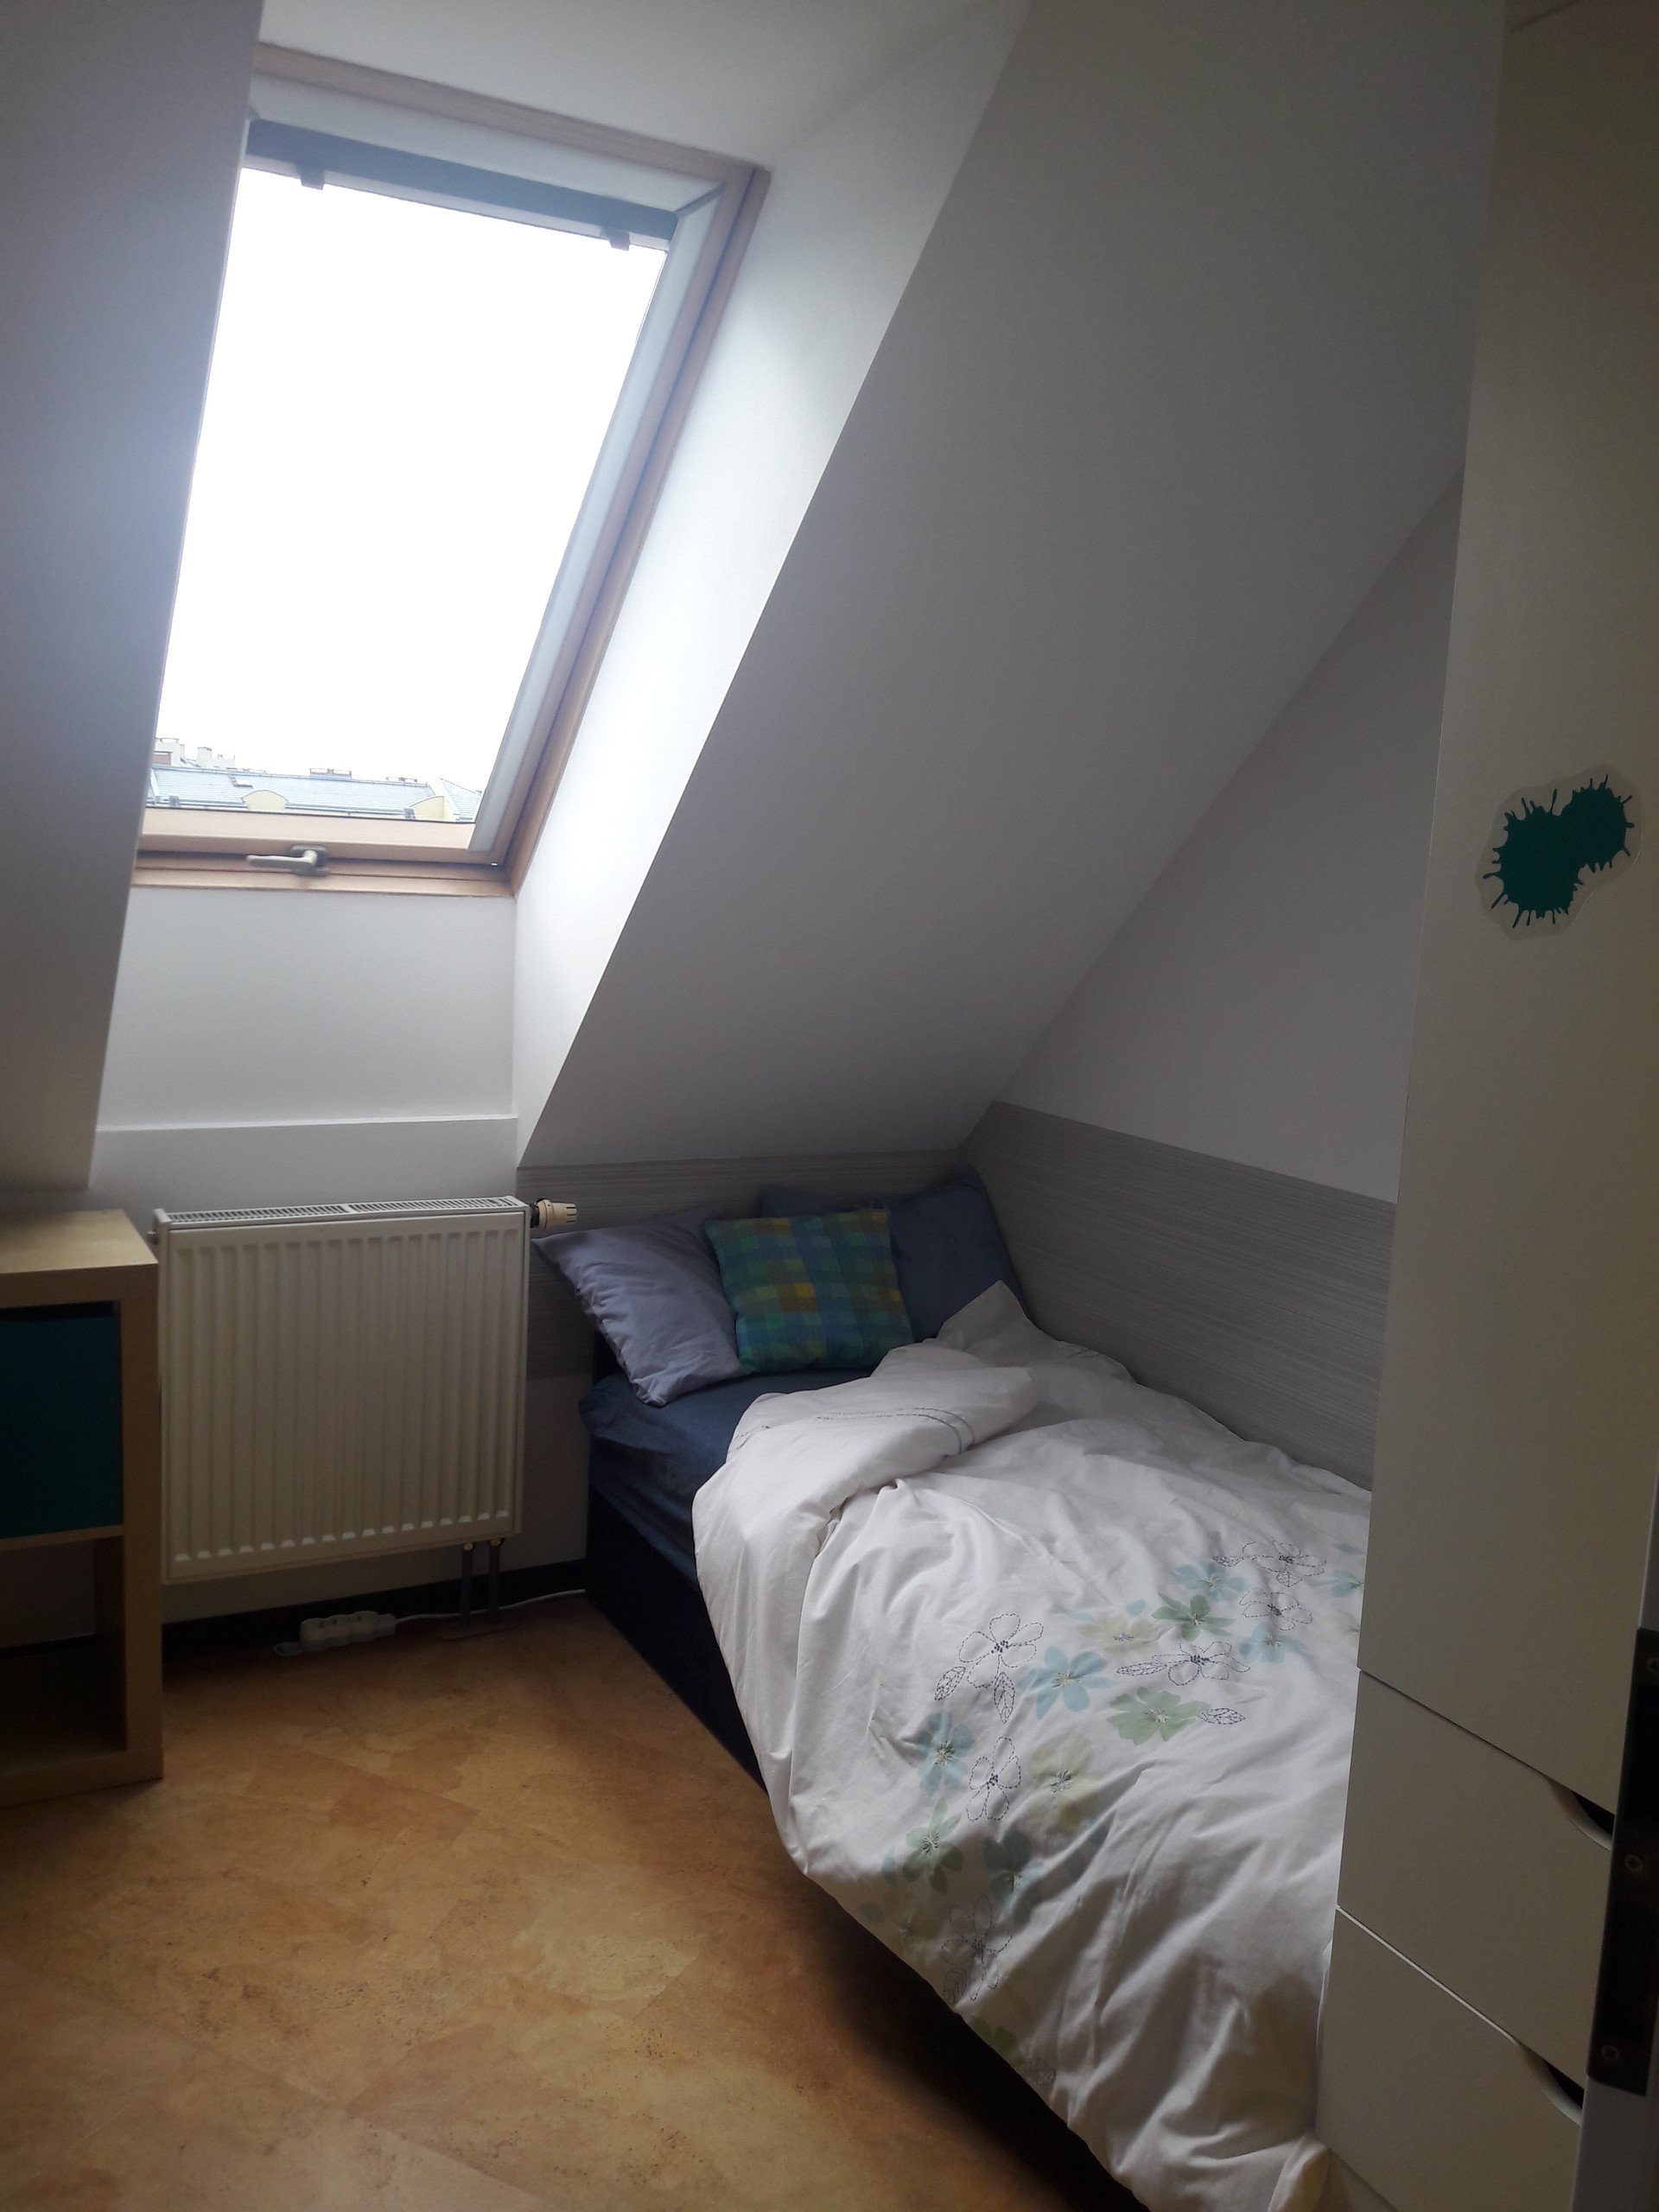 cozy small attic room 3 km from the old town